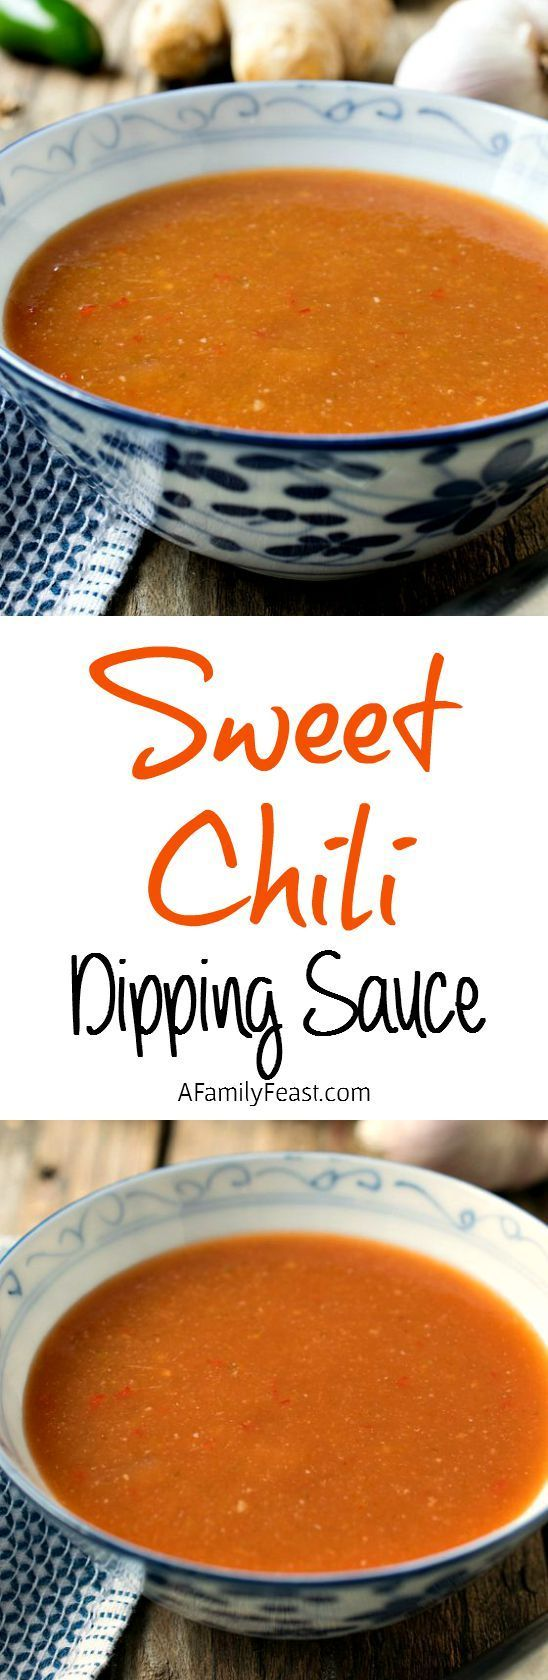 Sweet Chili Dipping Sauce - The perfect, easy dip to serve alongside coconut chicken, vegetables or chicken nuggets but also delicious on tacos!